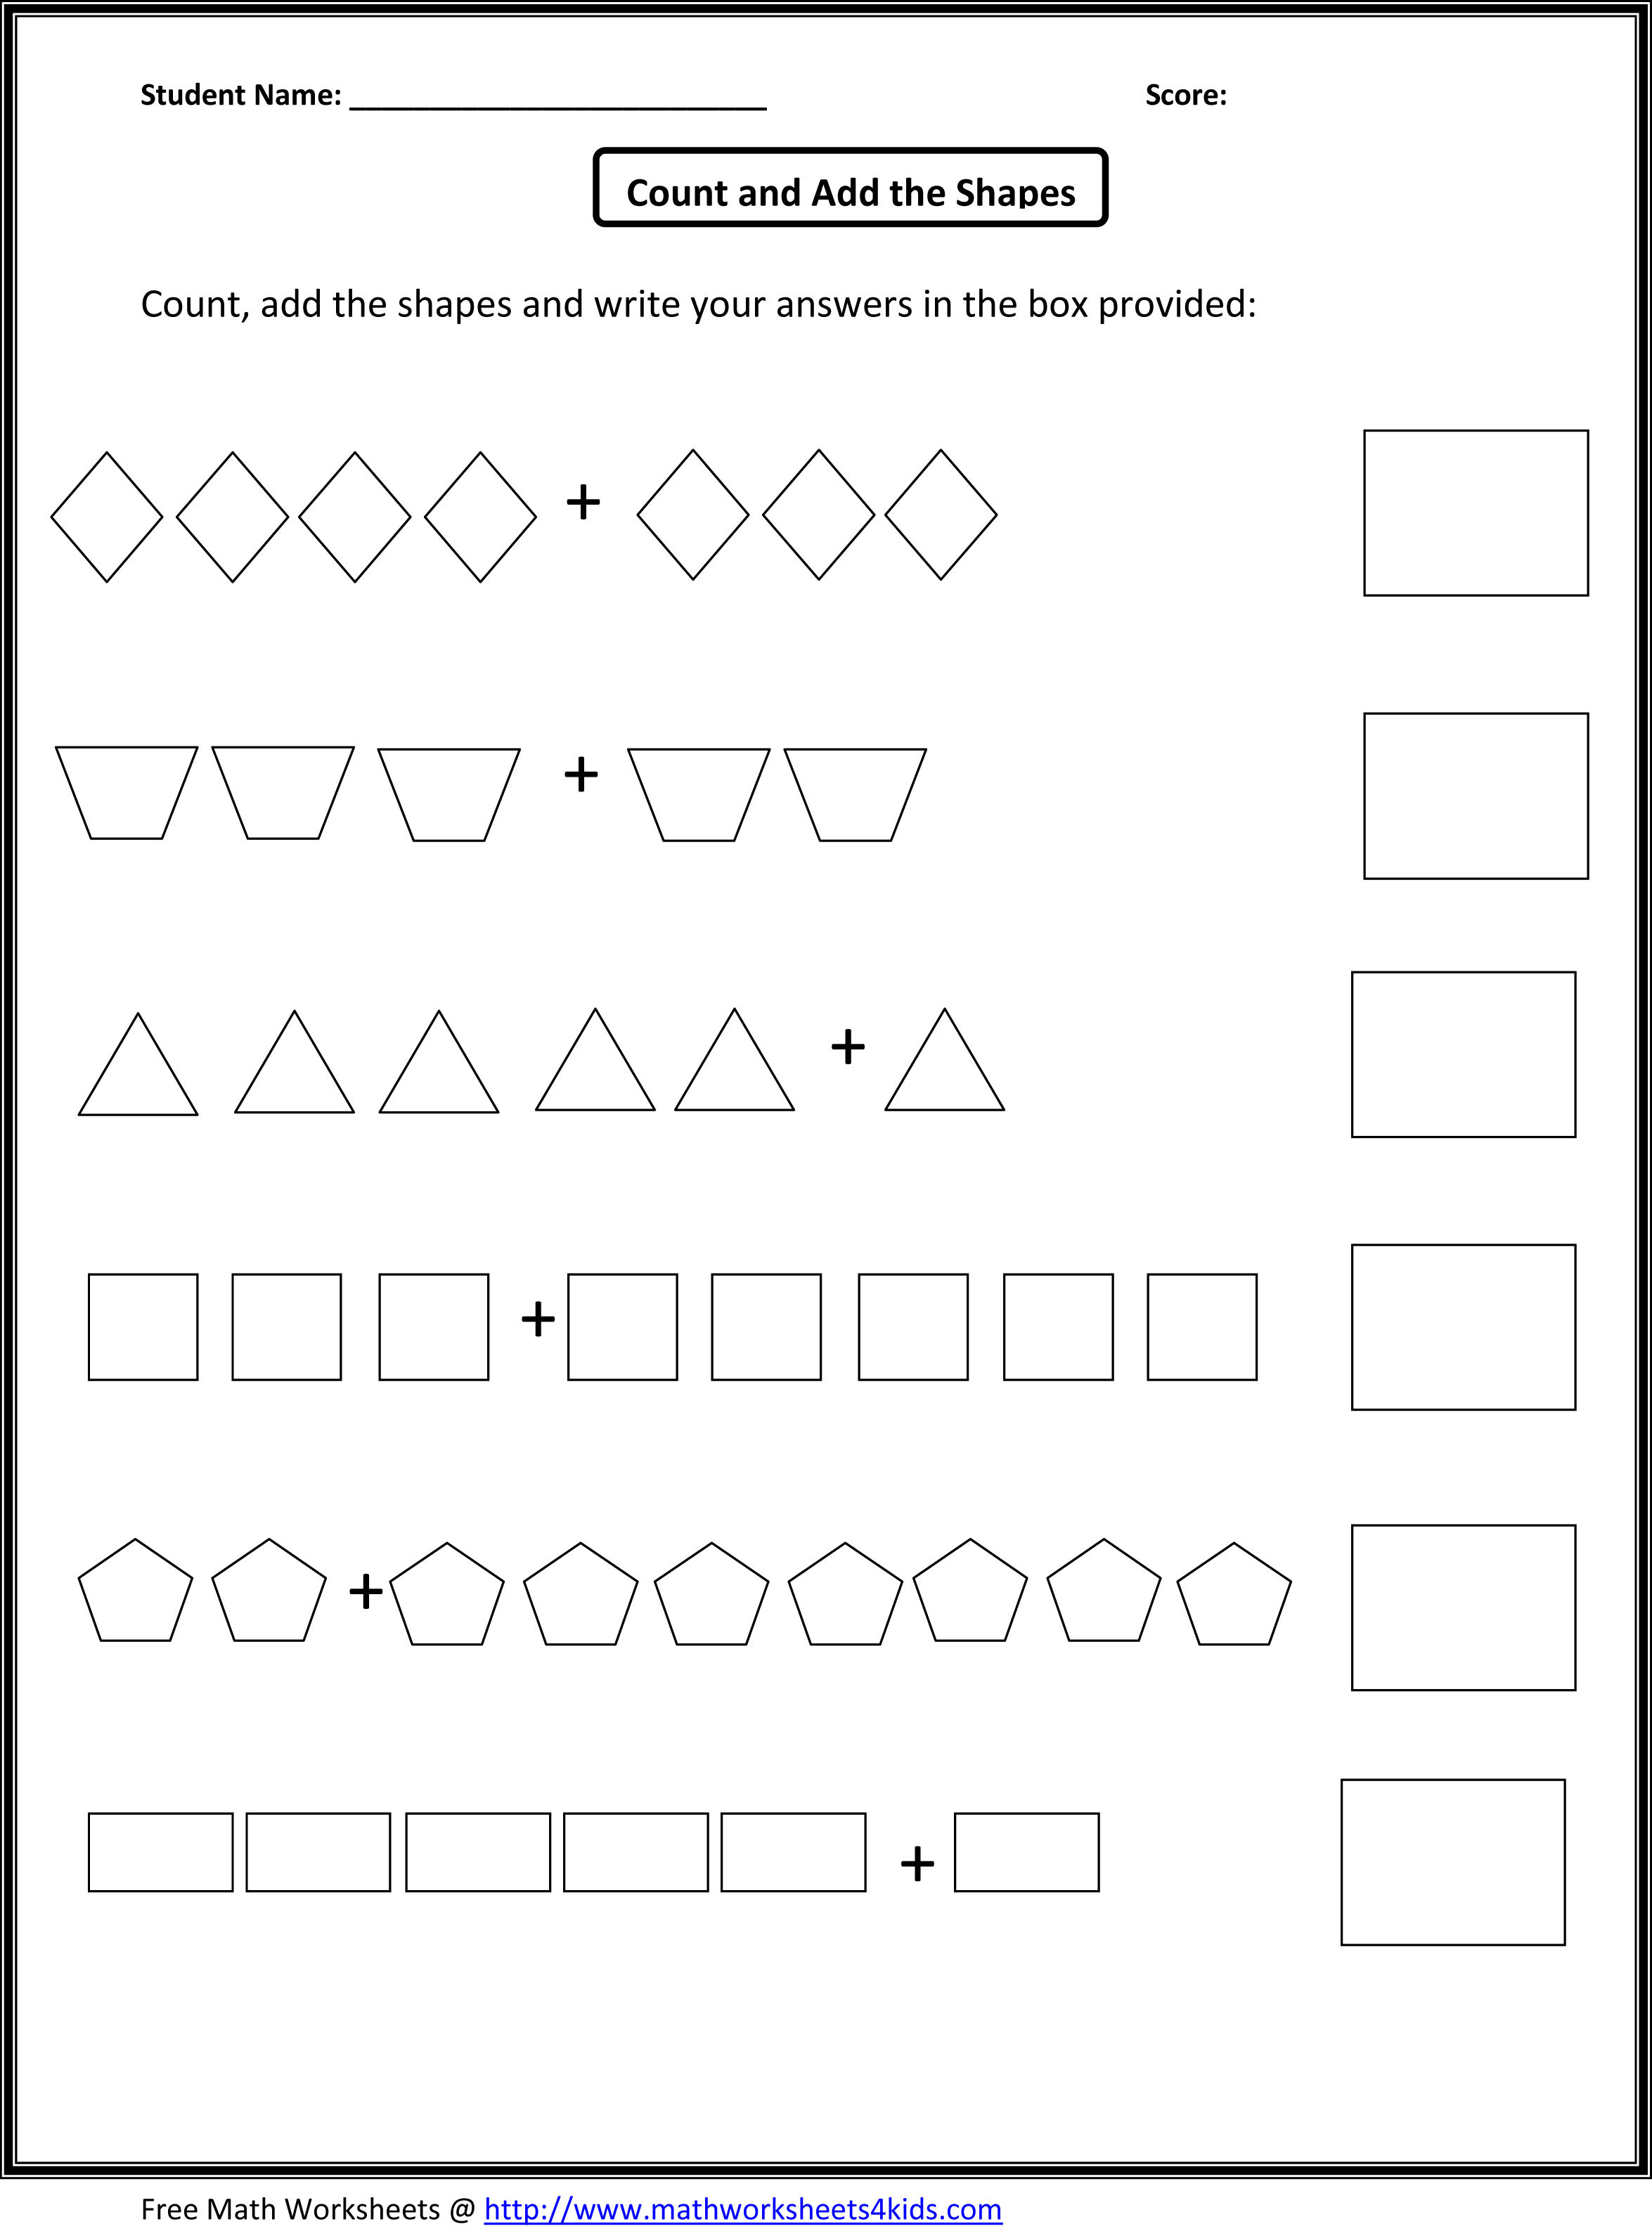 14 Best Images Of Add Math Worksheets